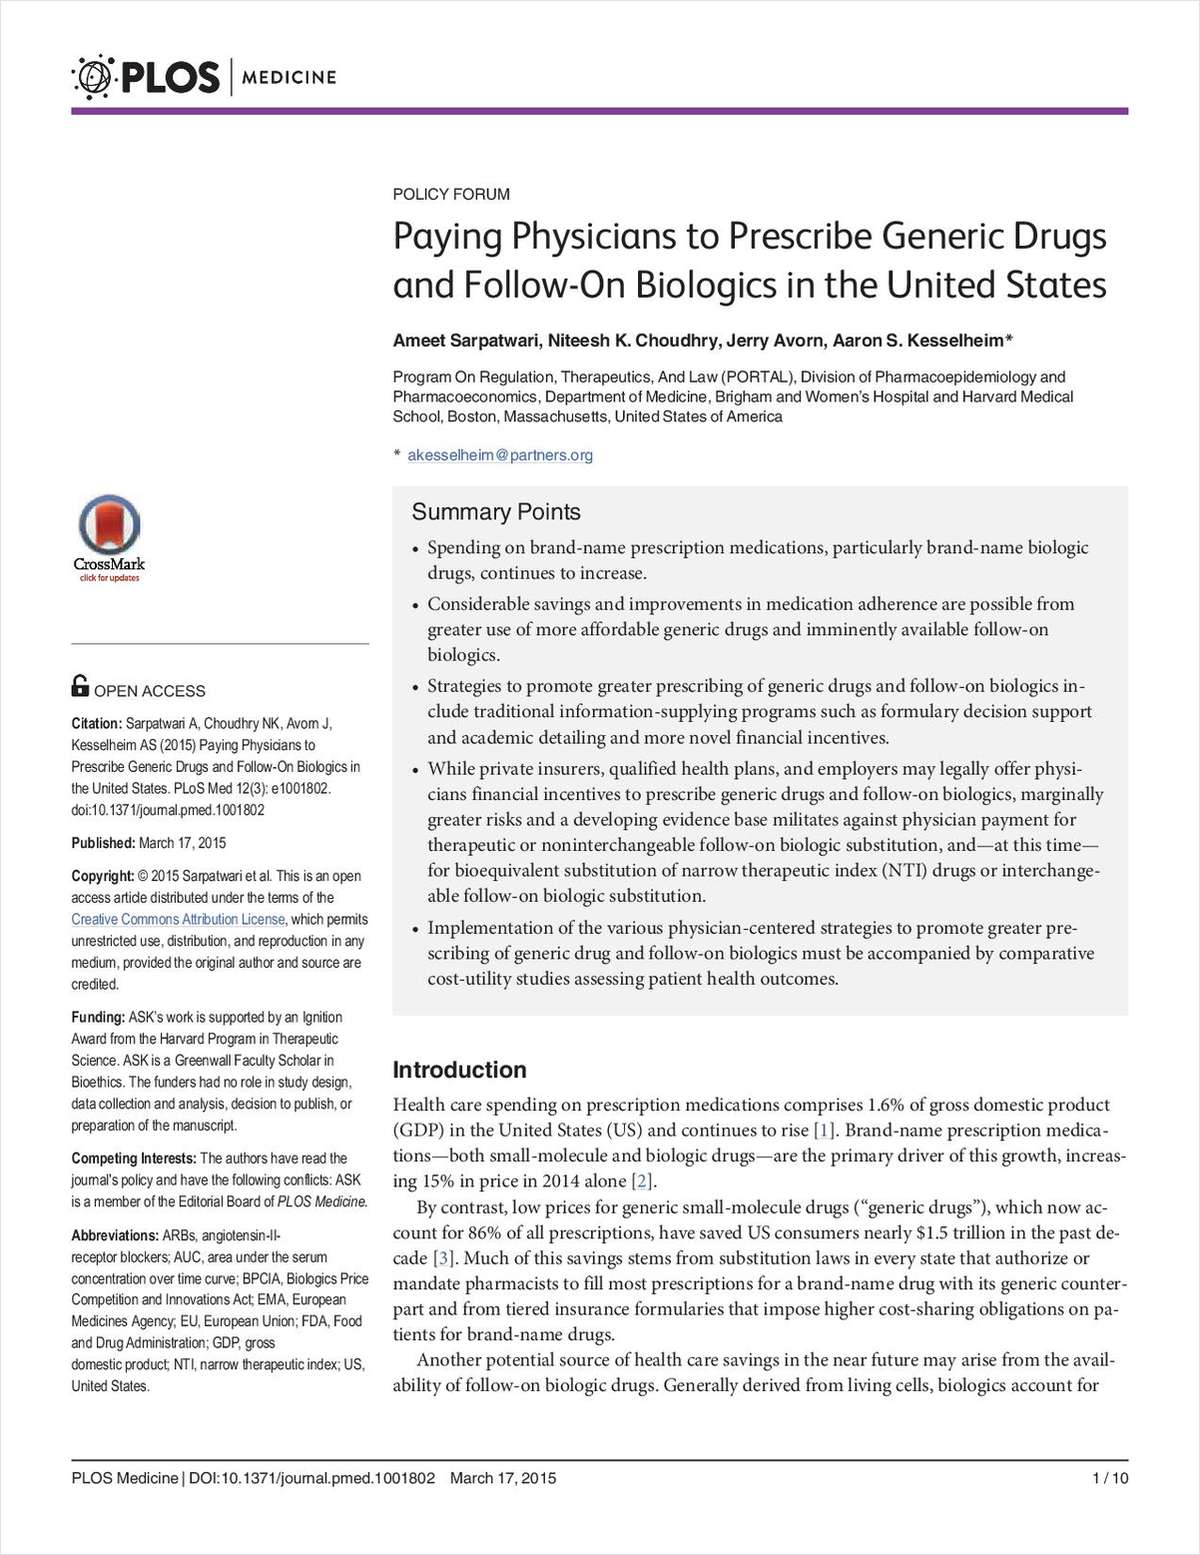 Paying Physicians to Presribe Generic Drugs and Follow-On Biologics in the United States